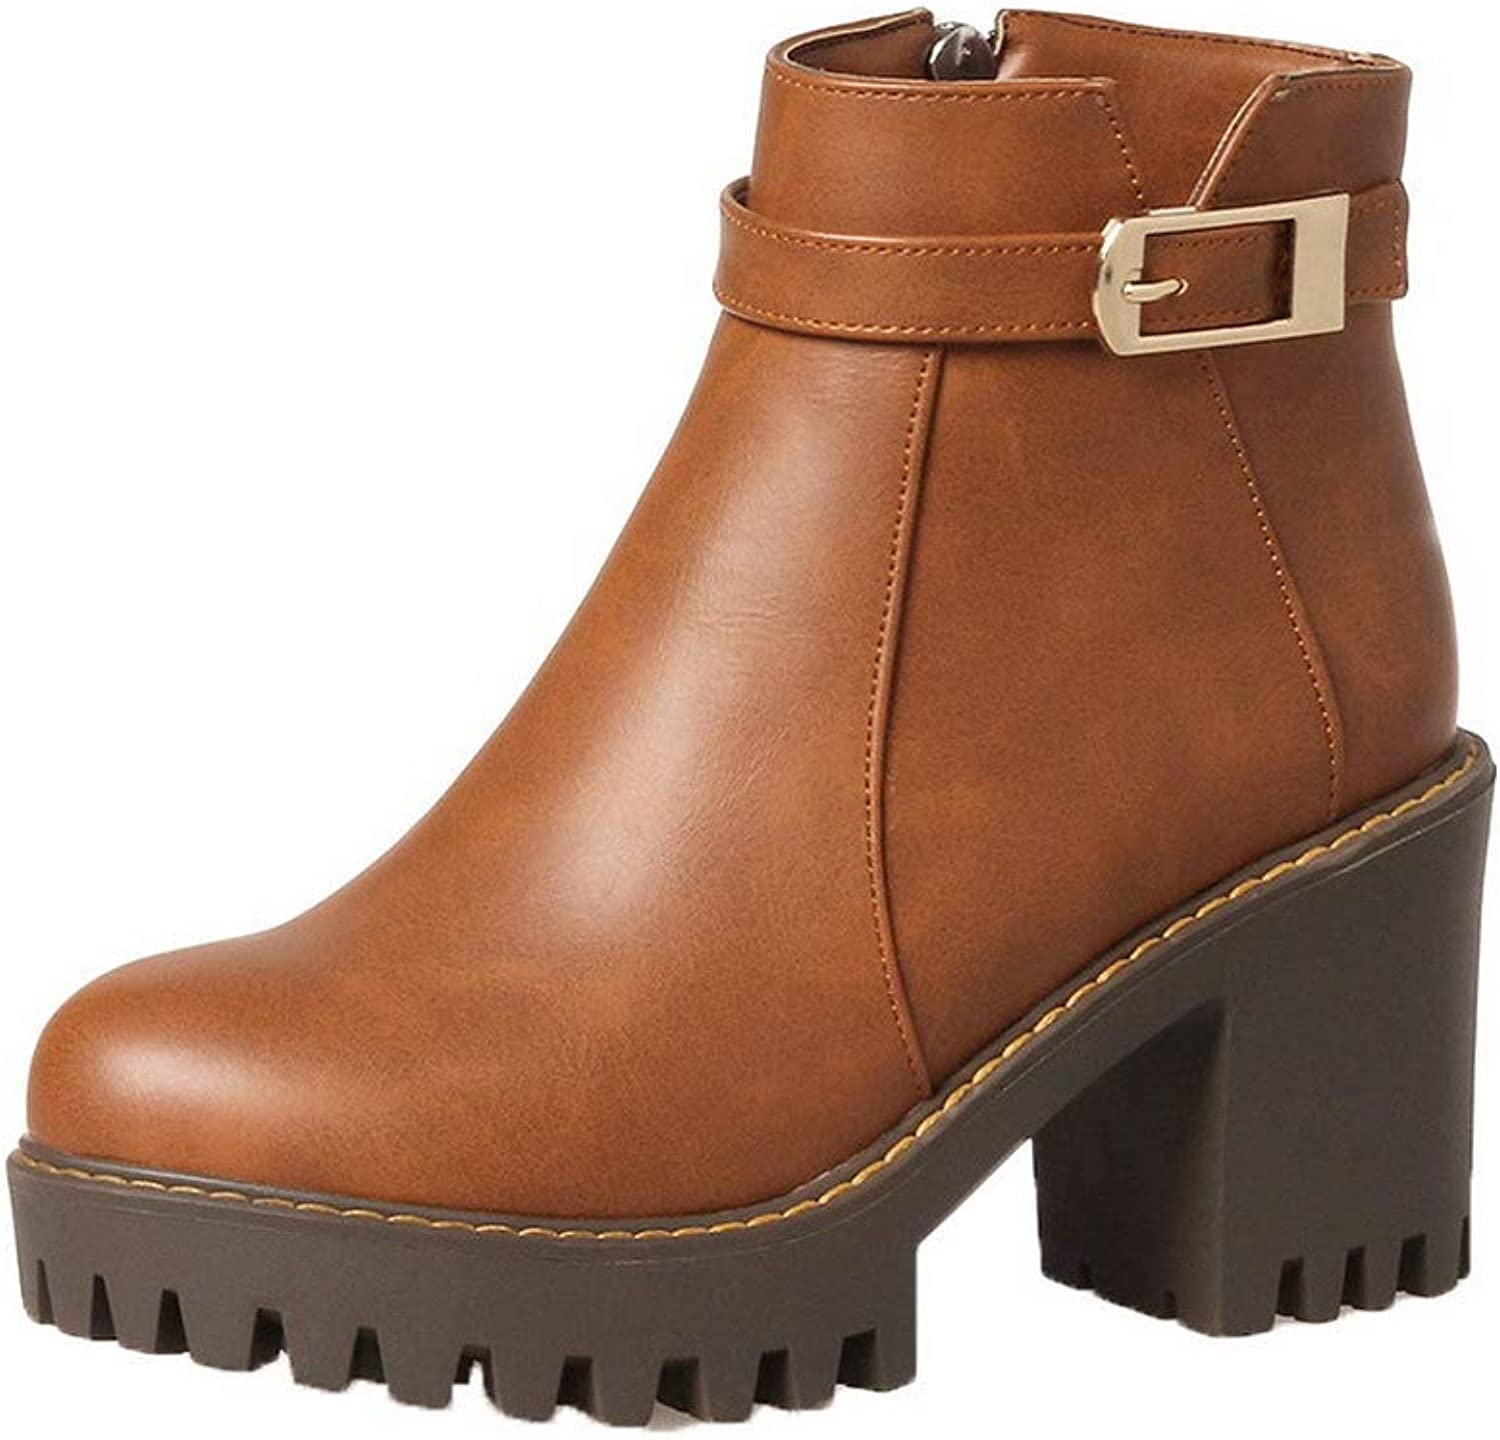 WeiPoot Women's Closed-Toe High-Heels Pu Low-Top Solid Boots, EGHXH109351